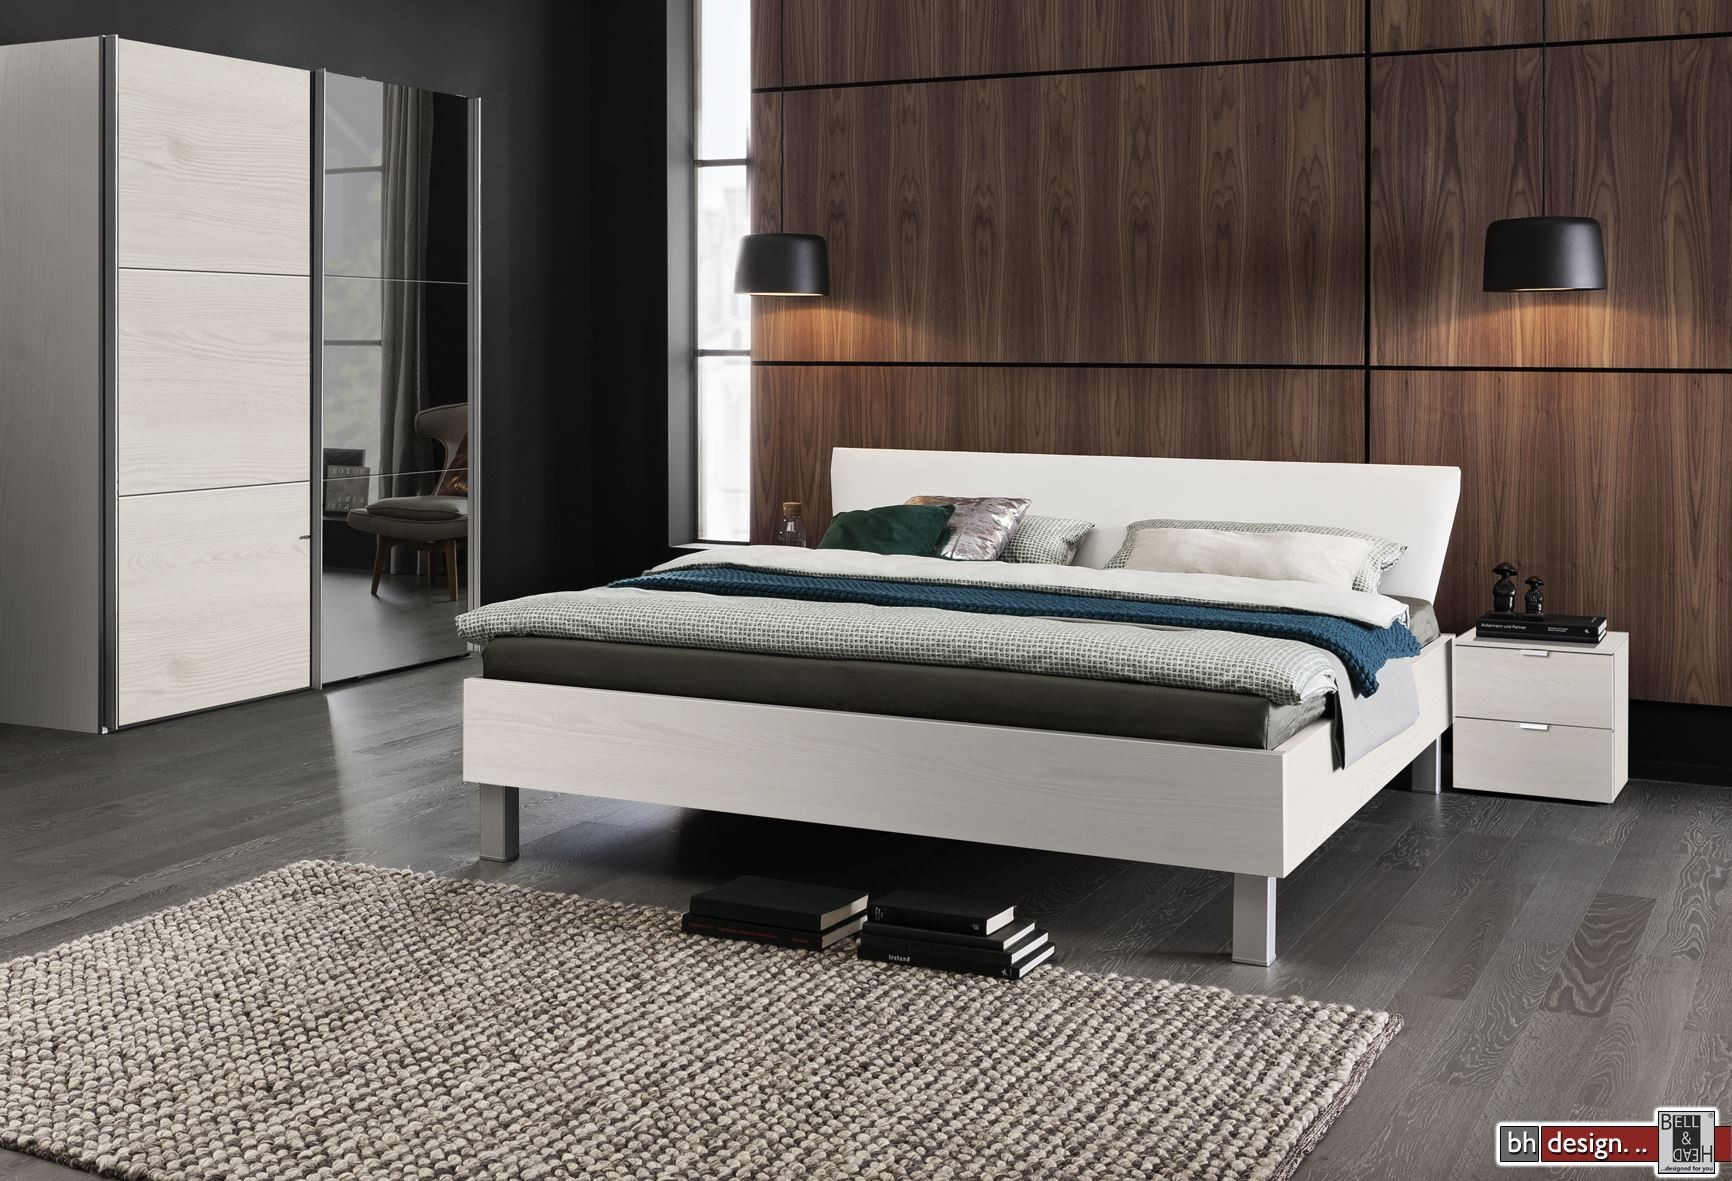 express m bel bett carina polsterr ckenteil weiss verschiedene farben und gr en ab 200 x 90. Black Bedroom Furniture Sets. Home Design Ideas